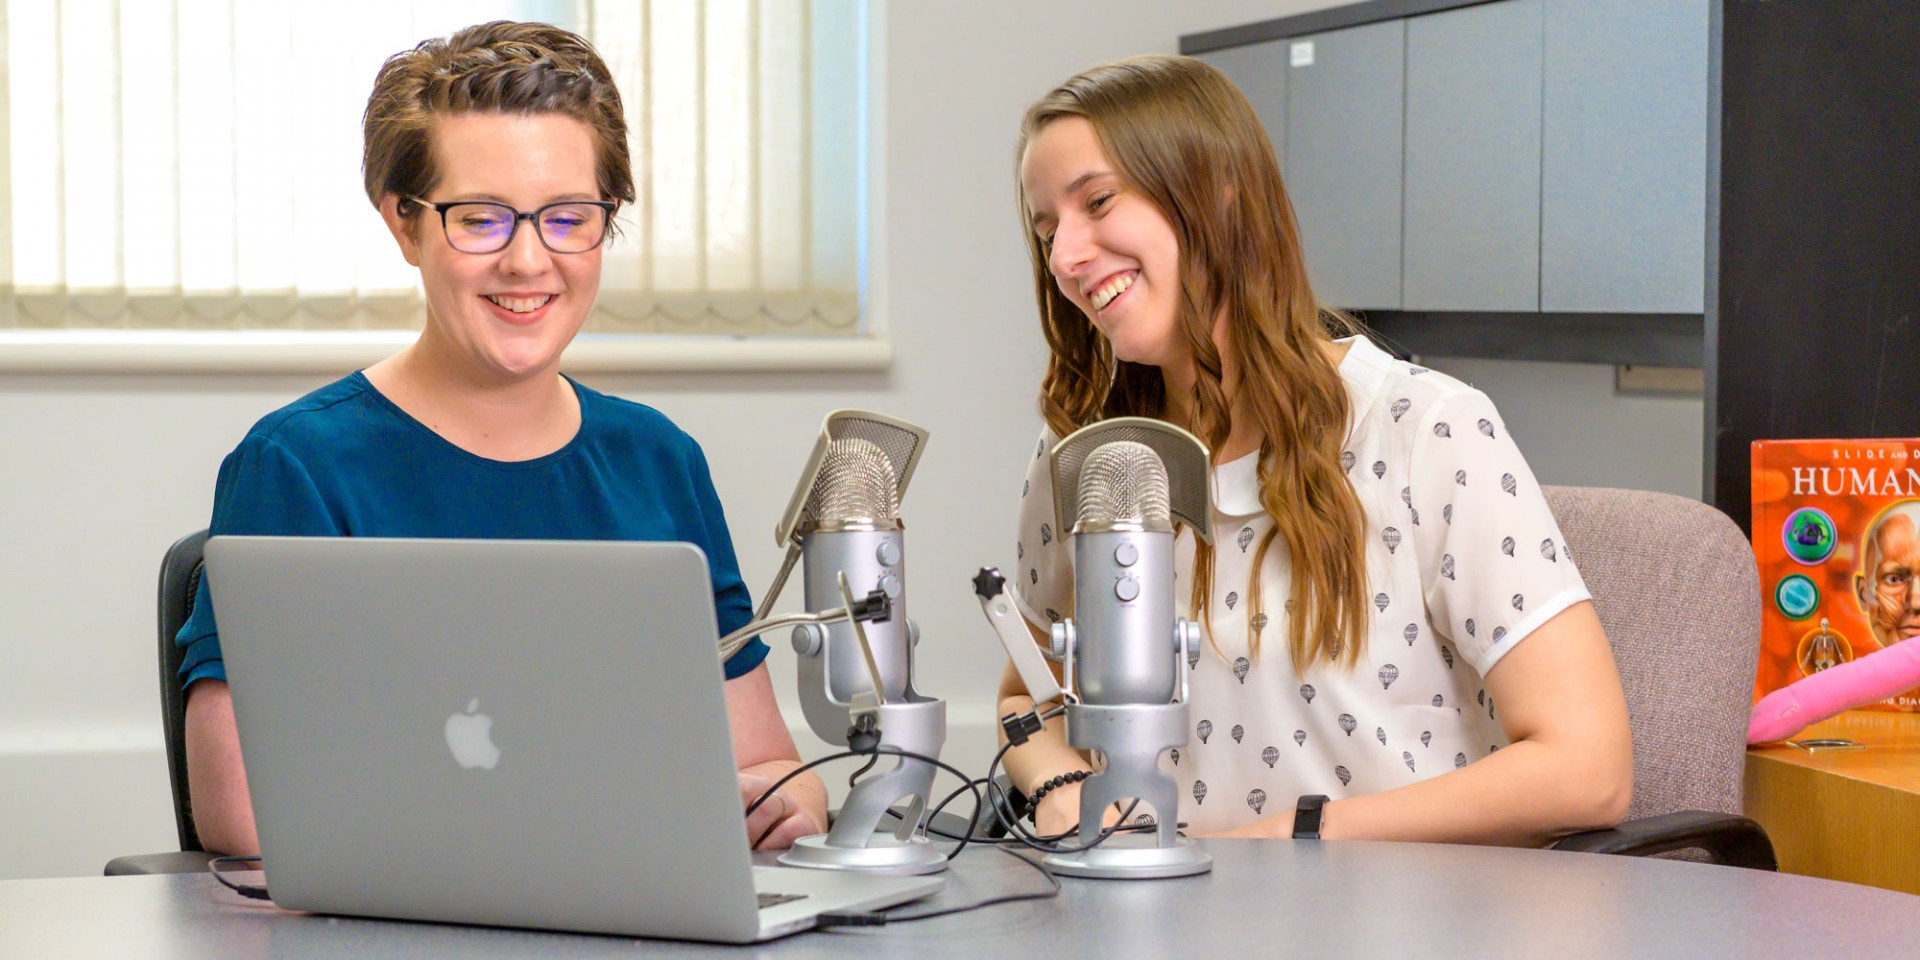 Digital education program assistant Jenni Marshall (left) and medical student Natalie Marsden have produced 11 Surgery ABCs podcasts so far, covering topics aimed at teaching kids about their bodies and getting them excited about health careers. (Photo: Richard Siemens)